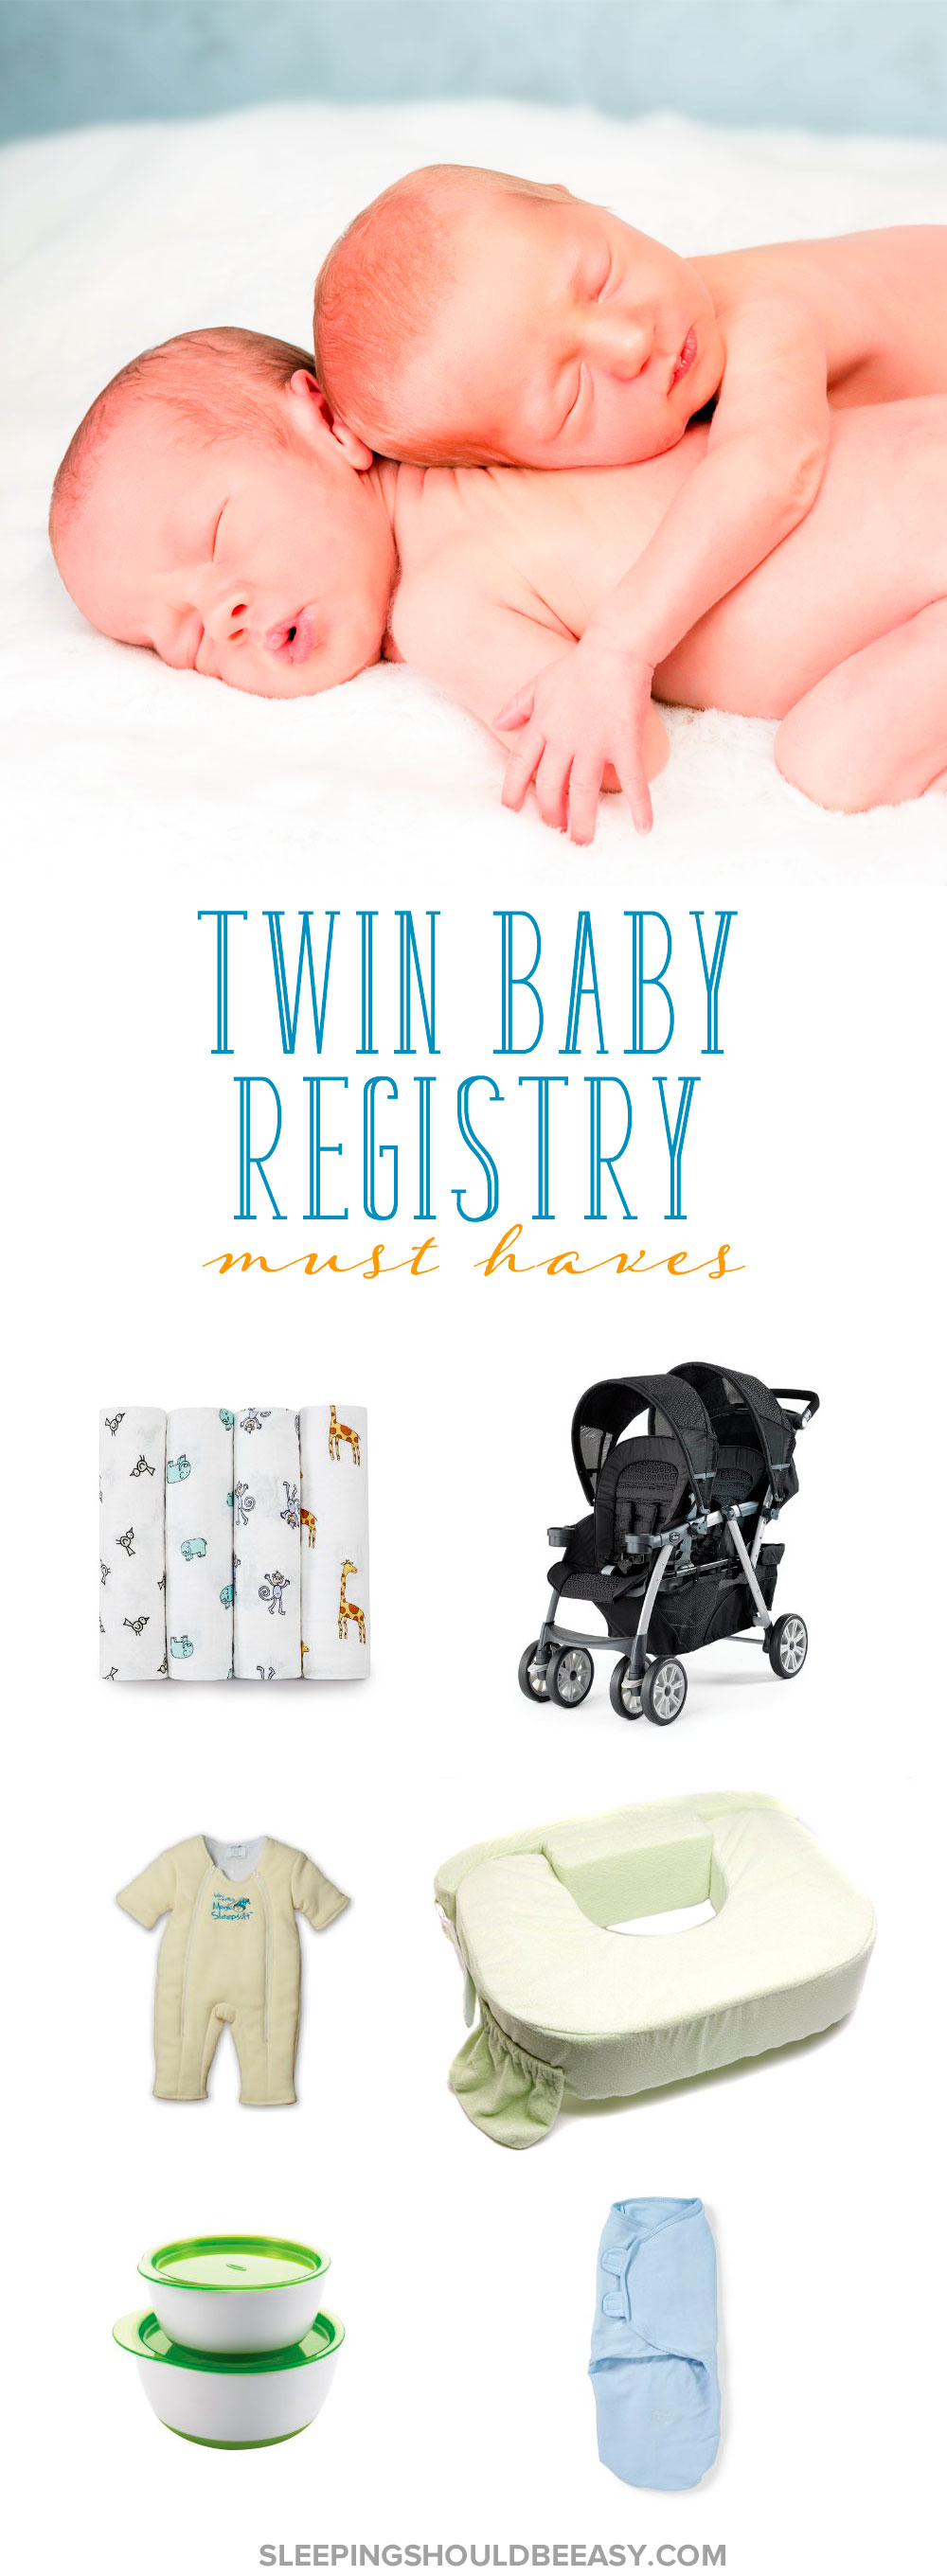 Are you expecting twins and want to know everything you need to prepare for the babies? Check out this comprehensive list of twin baby registry must-haves!